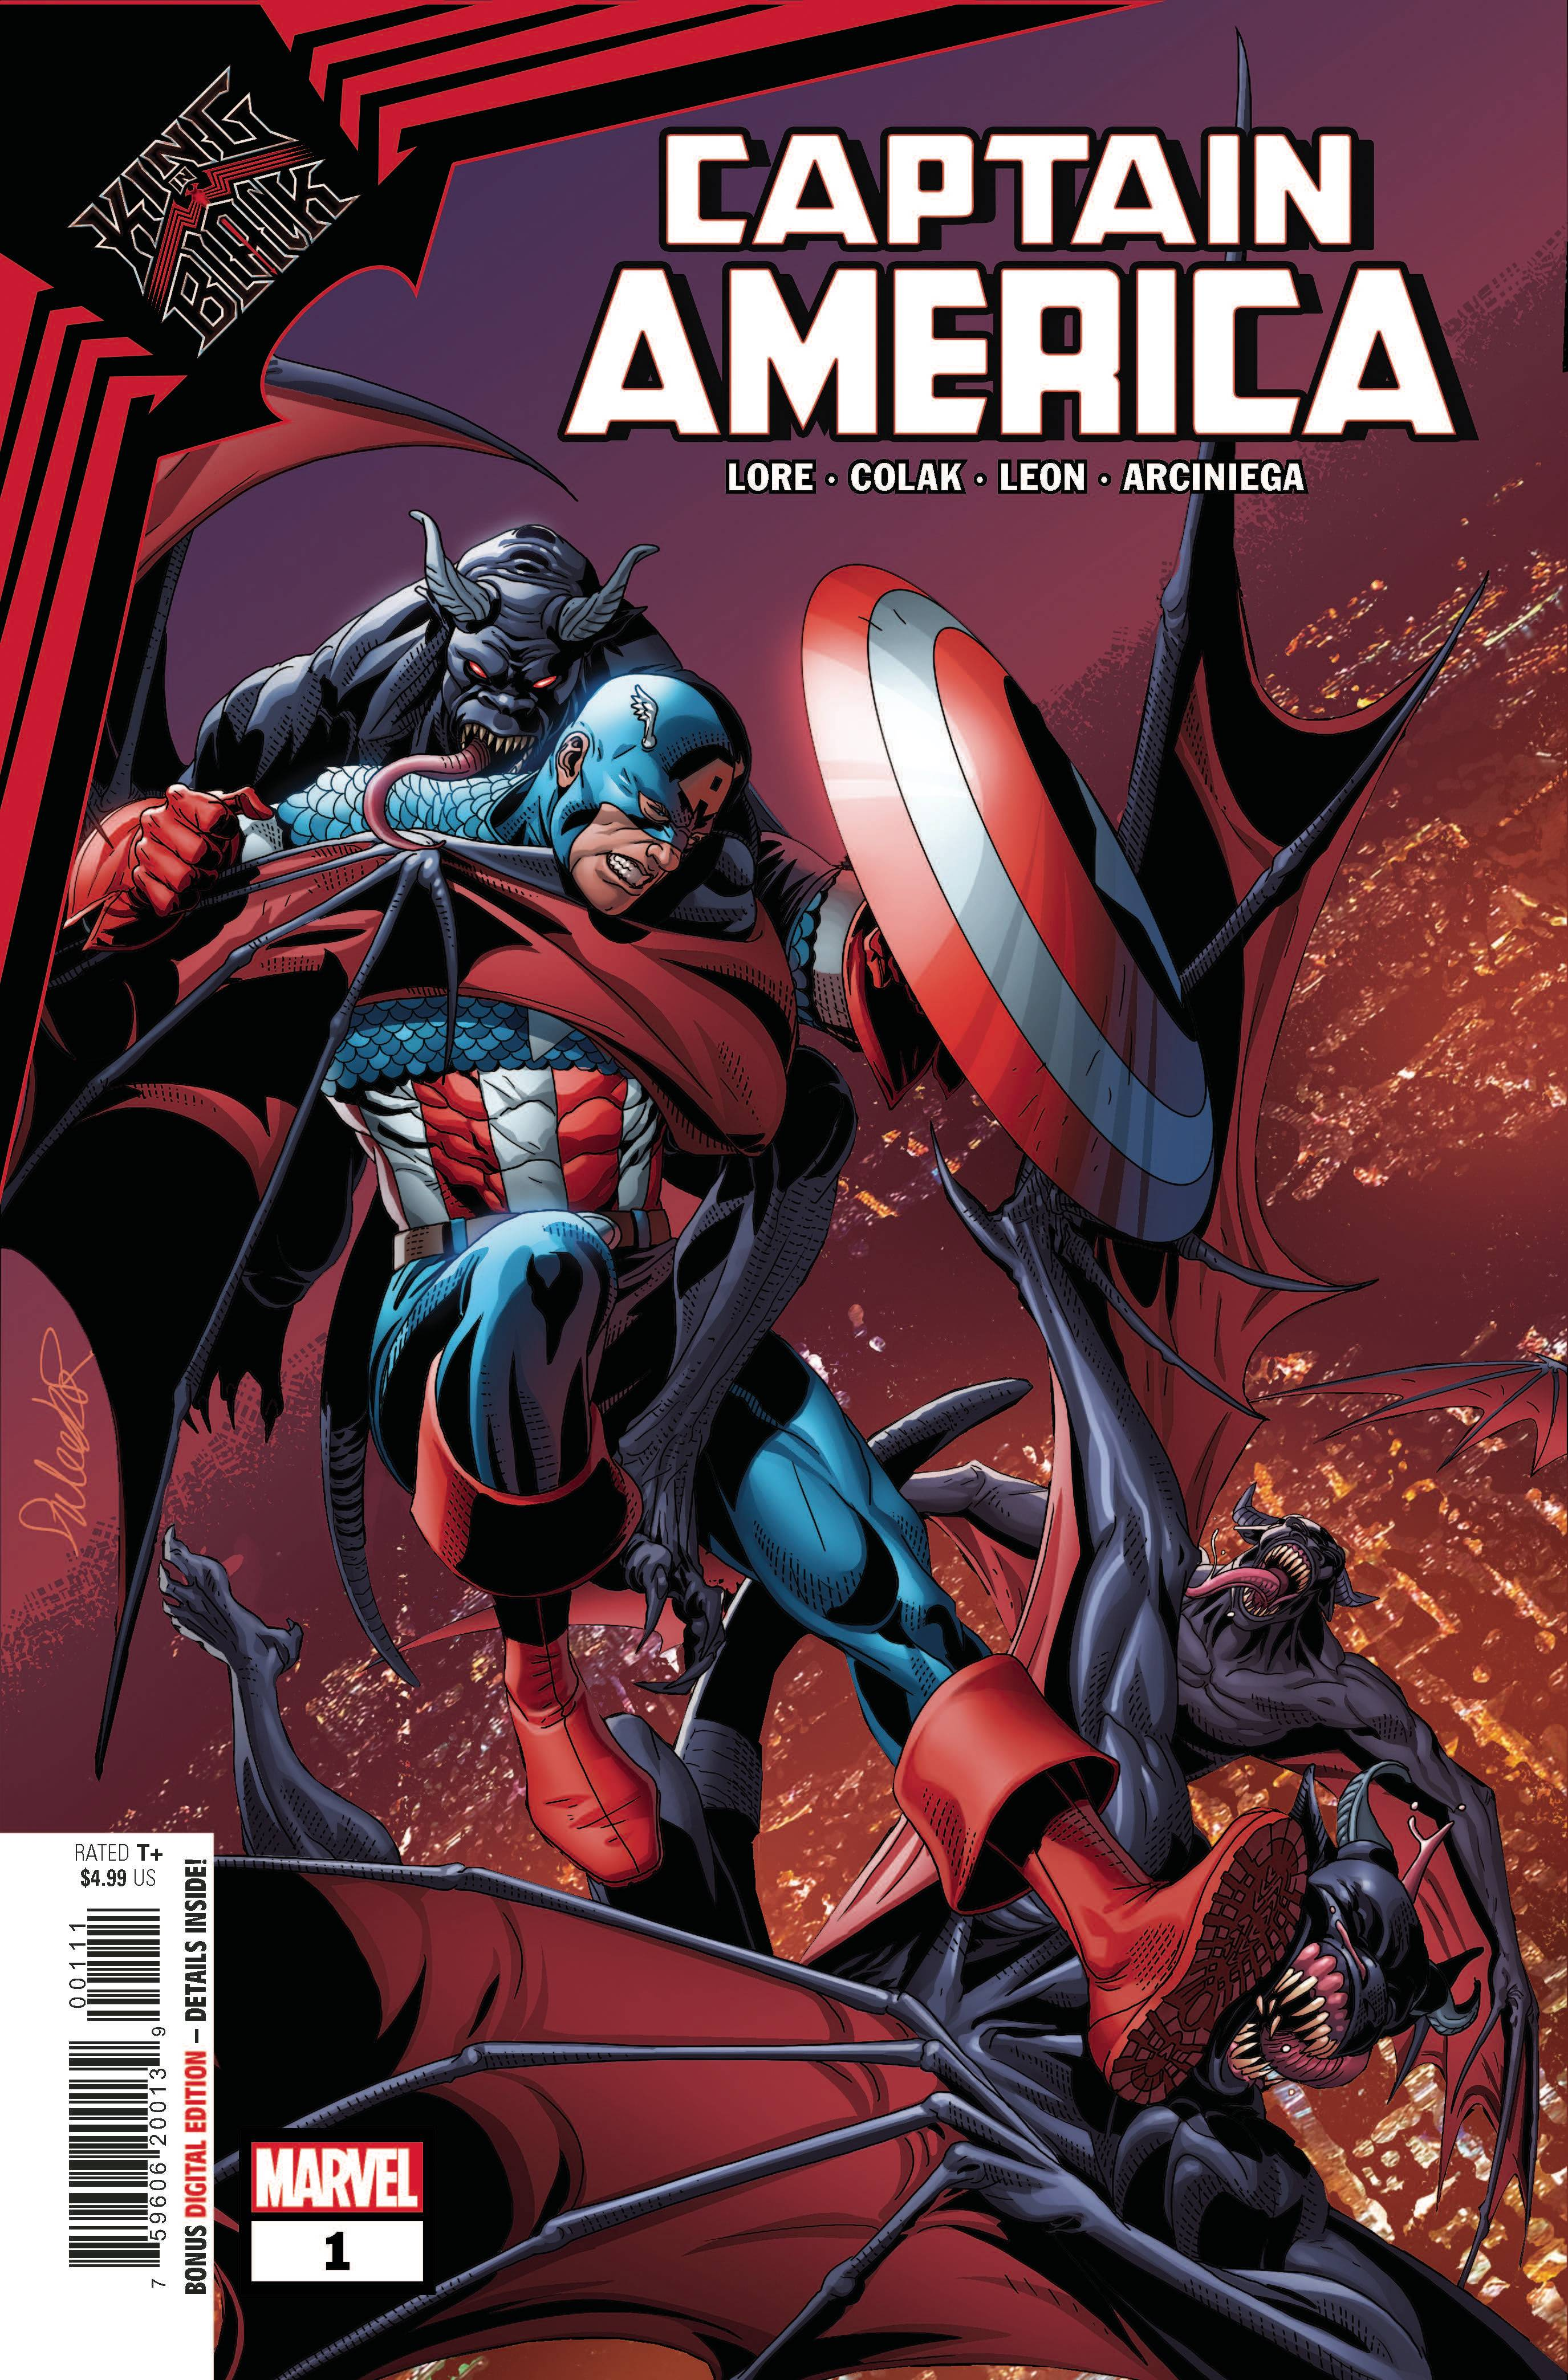 KING IN BLACK CAPTAIN AMERICA #1